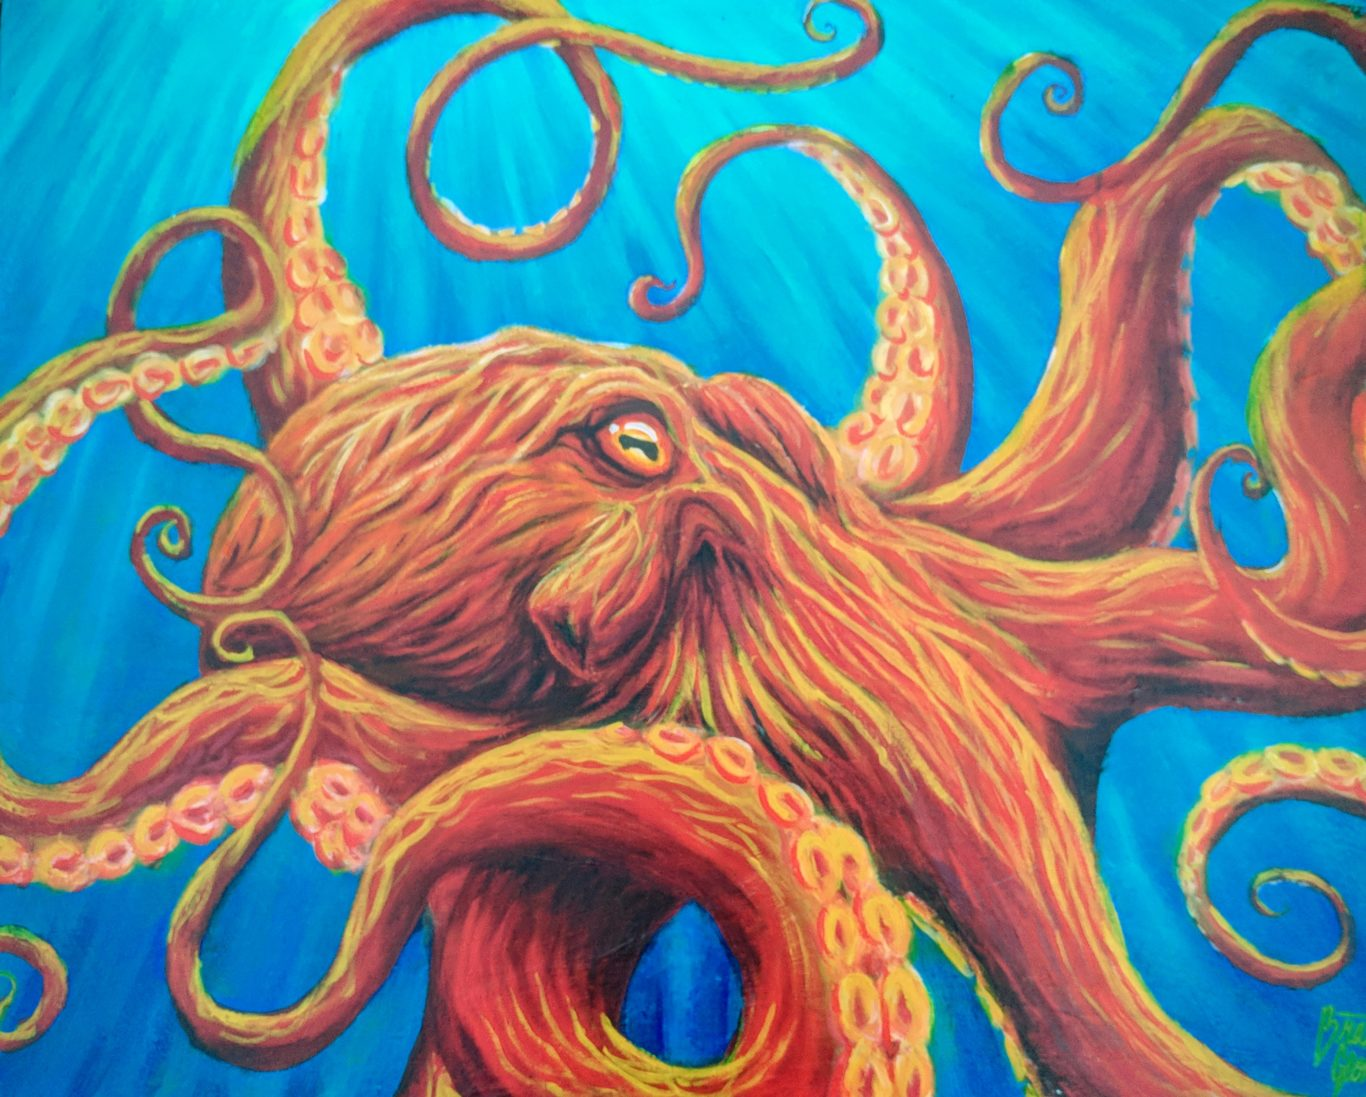 A painting of an octopus